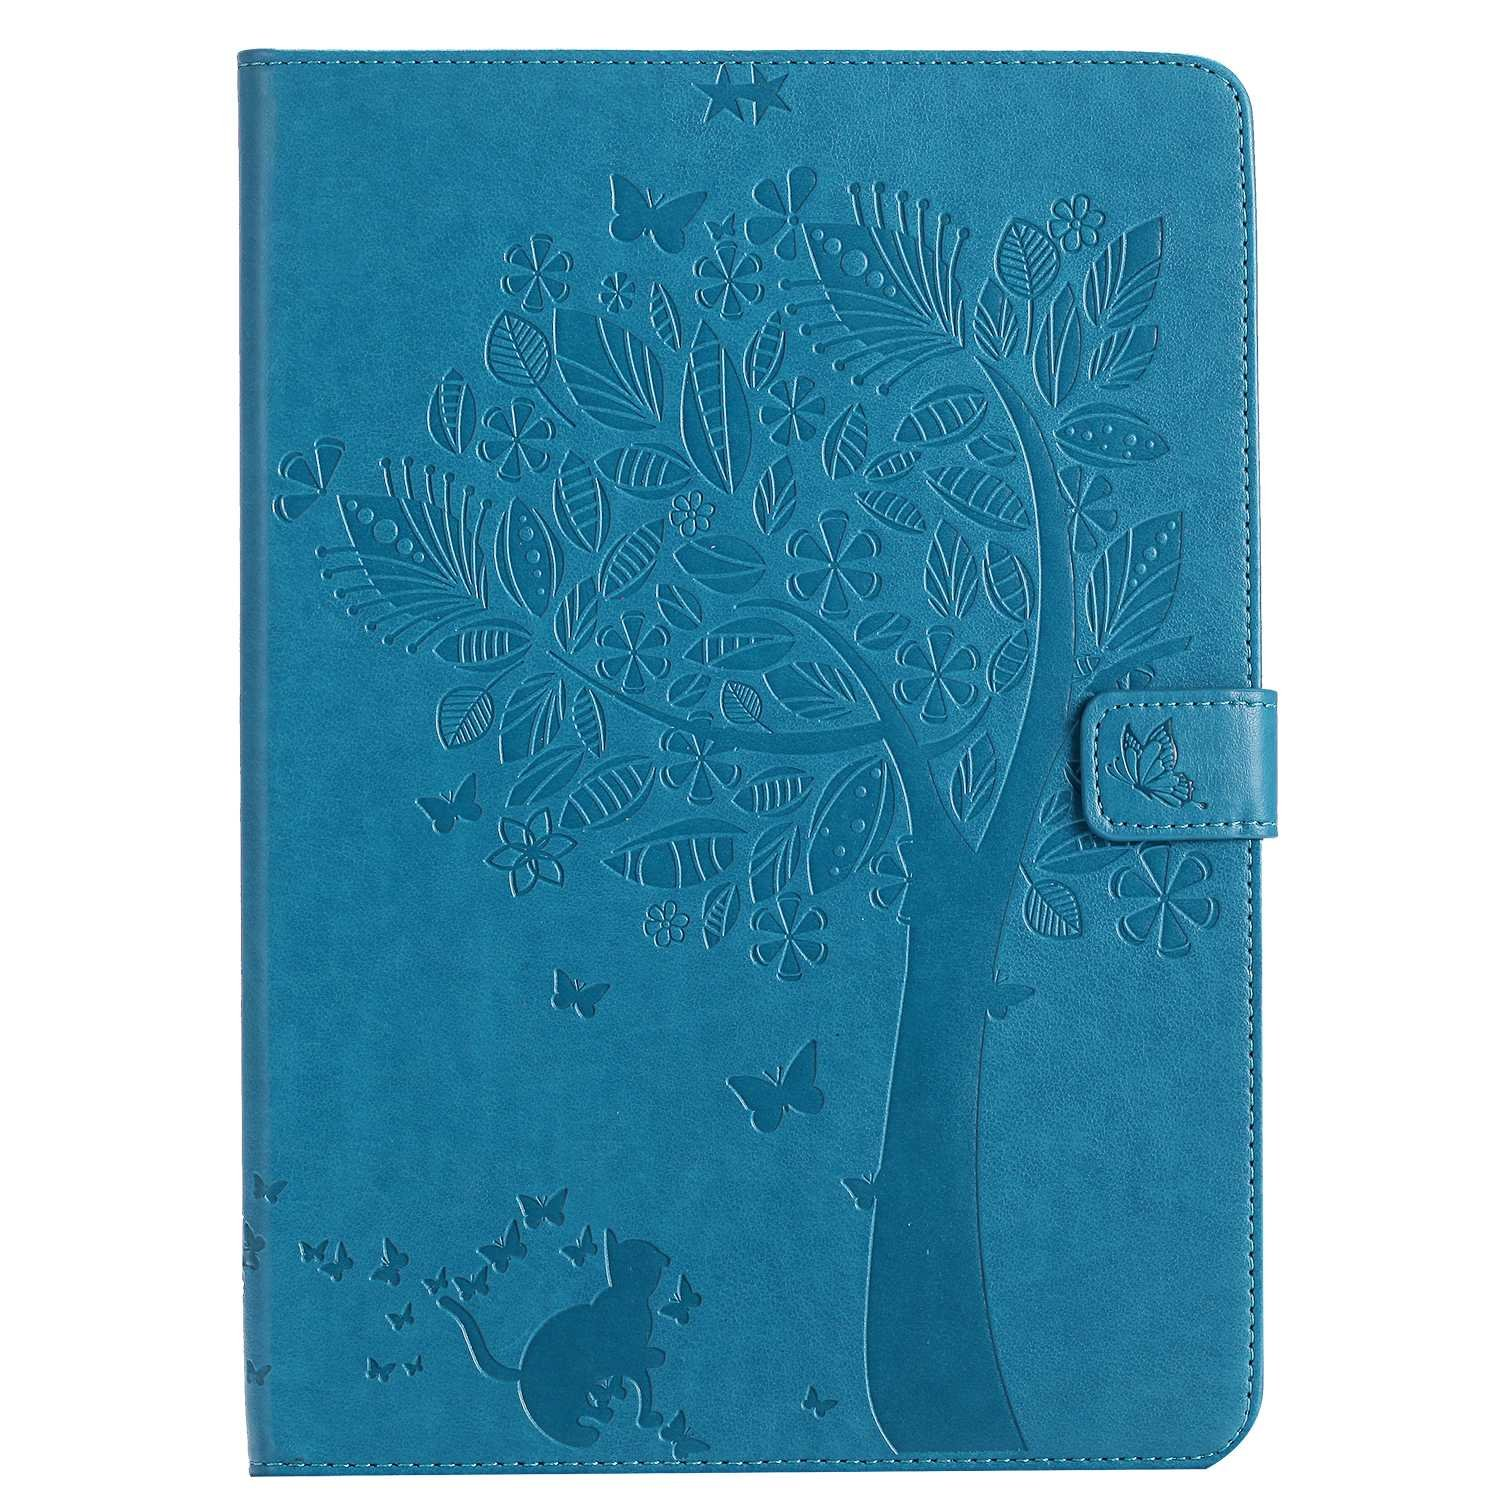 Bear Village iPad Pro 9.7 Inch Case, Leather Magnetic Case, Fullbody Protective Cover with Stand Function for Apple iPad Pro 9.7 Inch, Blue by Bear Village